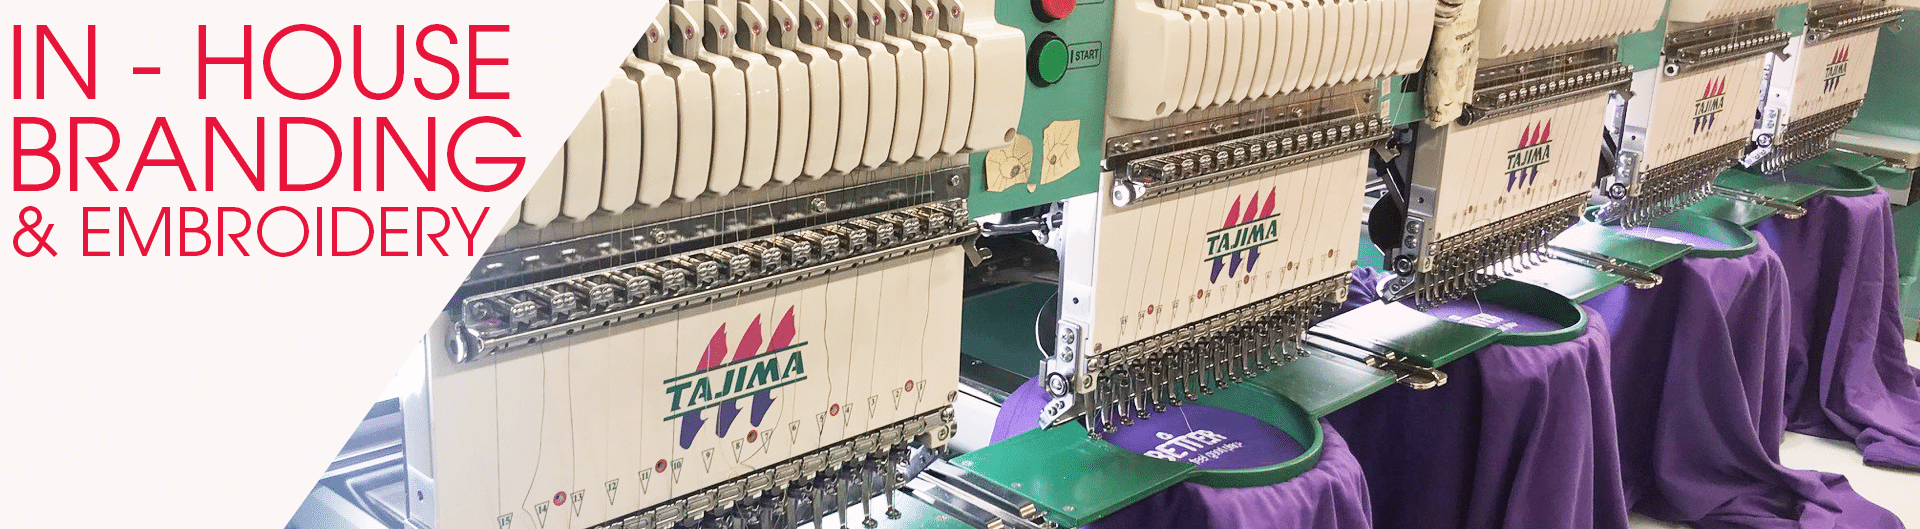 embroidery uniforms in house